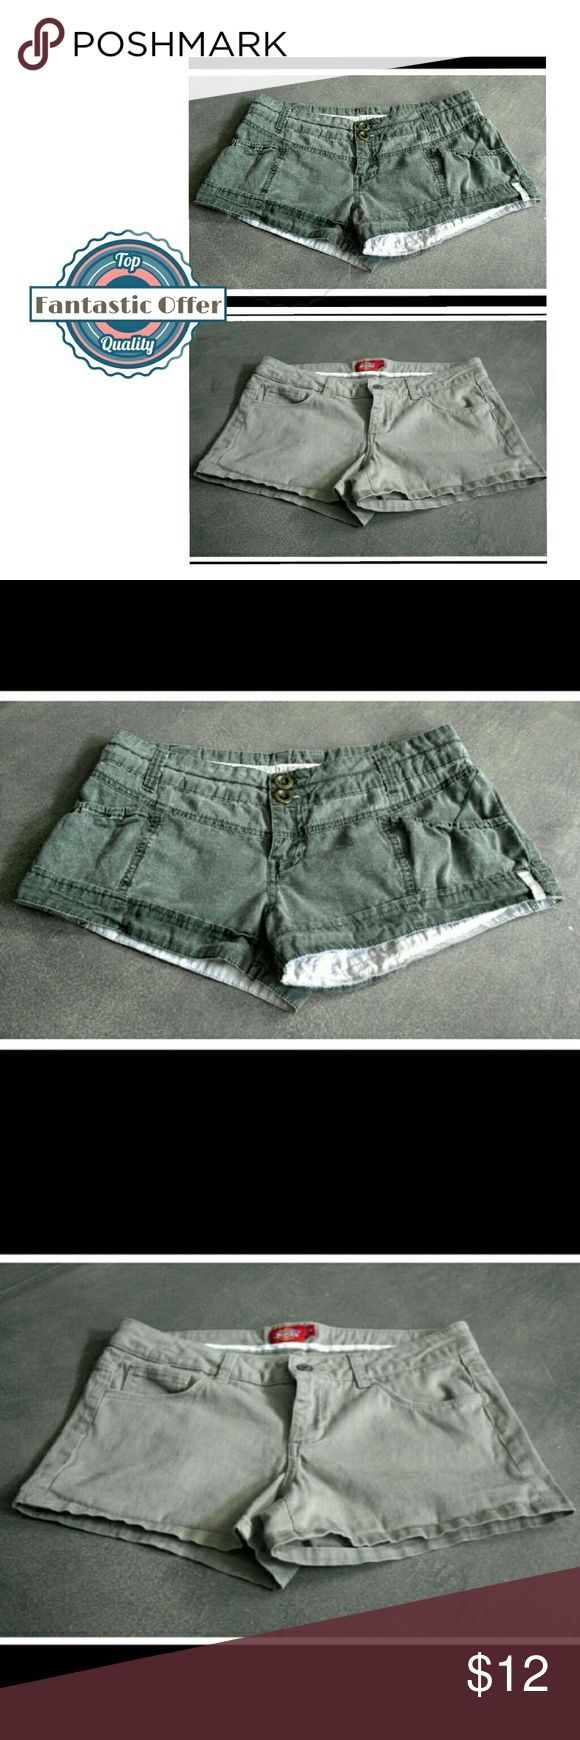 👖Juniors Shorts Bundle - ×2 Shorts for $12! 🎼Who likes a short shorts? YOU like short shorts! Well don't fret, this amazing bundle of ×2 pairs  of casual shorts is a steal at only $12! Bundle with anything else & the price drops to $8, which = one pair FREE! Both shorts are Junior sizes. The low-rise army green Billabong shorts are Jr. size 5, good condition. The light tan khaki Dickies are Jr. size 11, excellent condition. Dickies Shorts